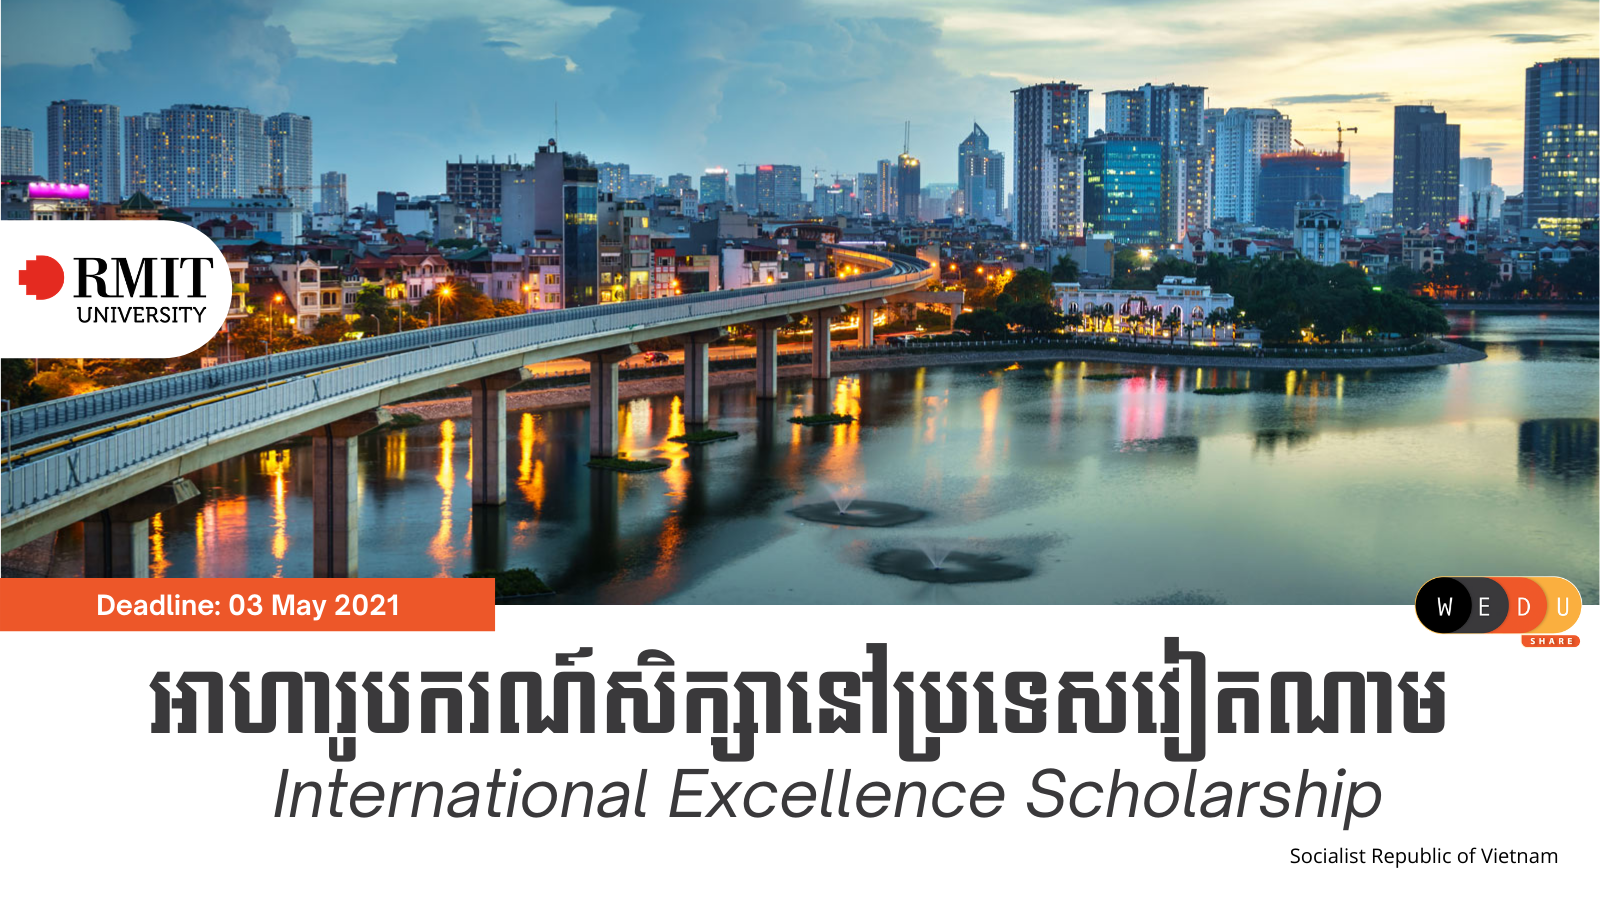 International Excellence Scholarship